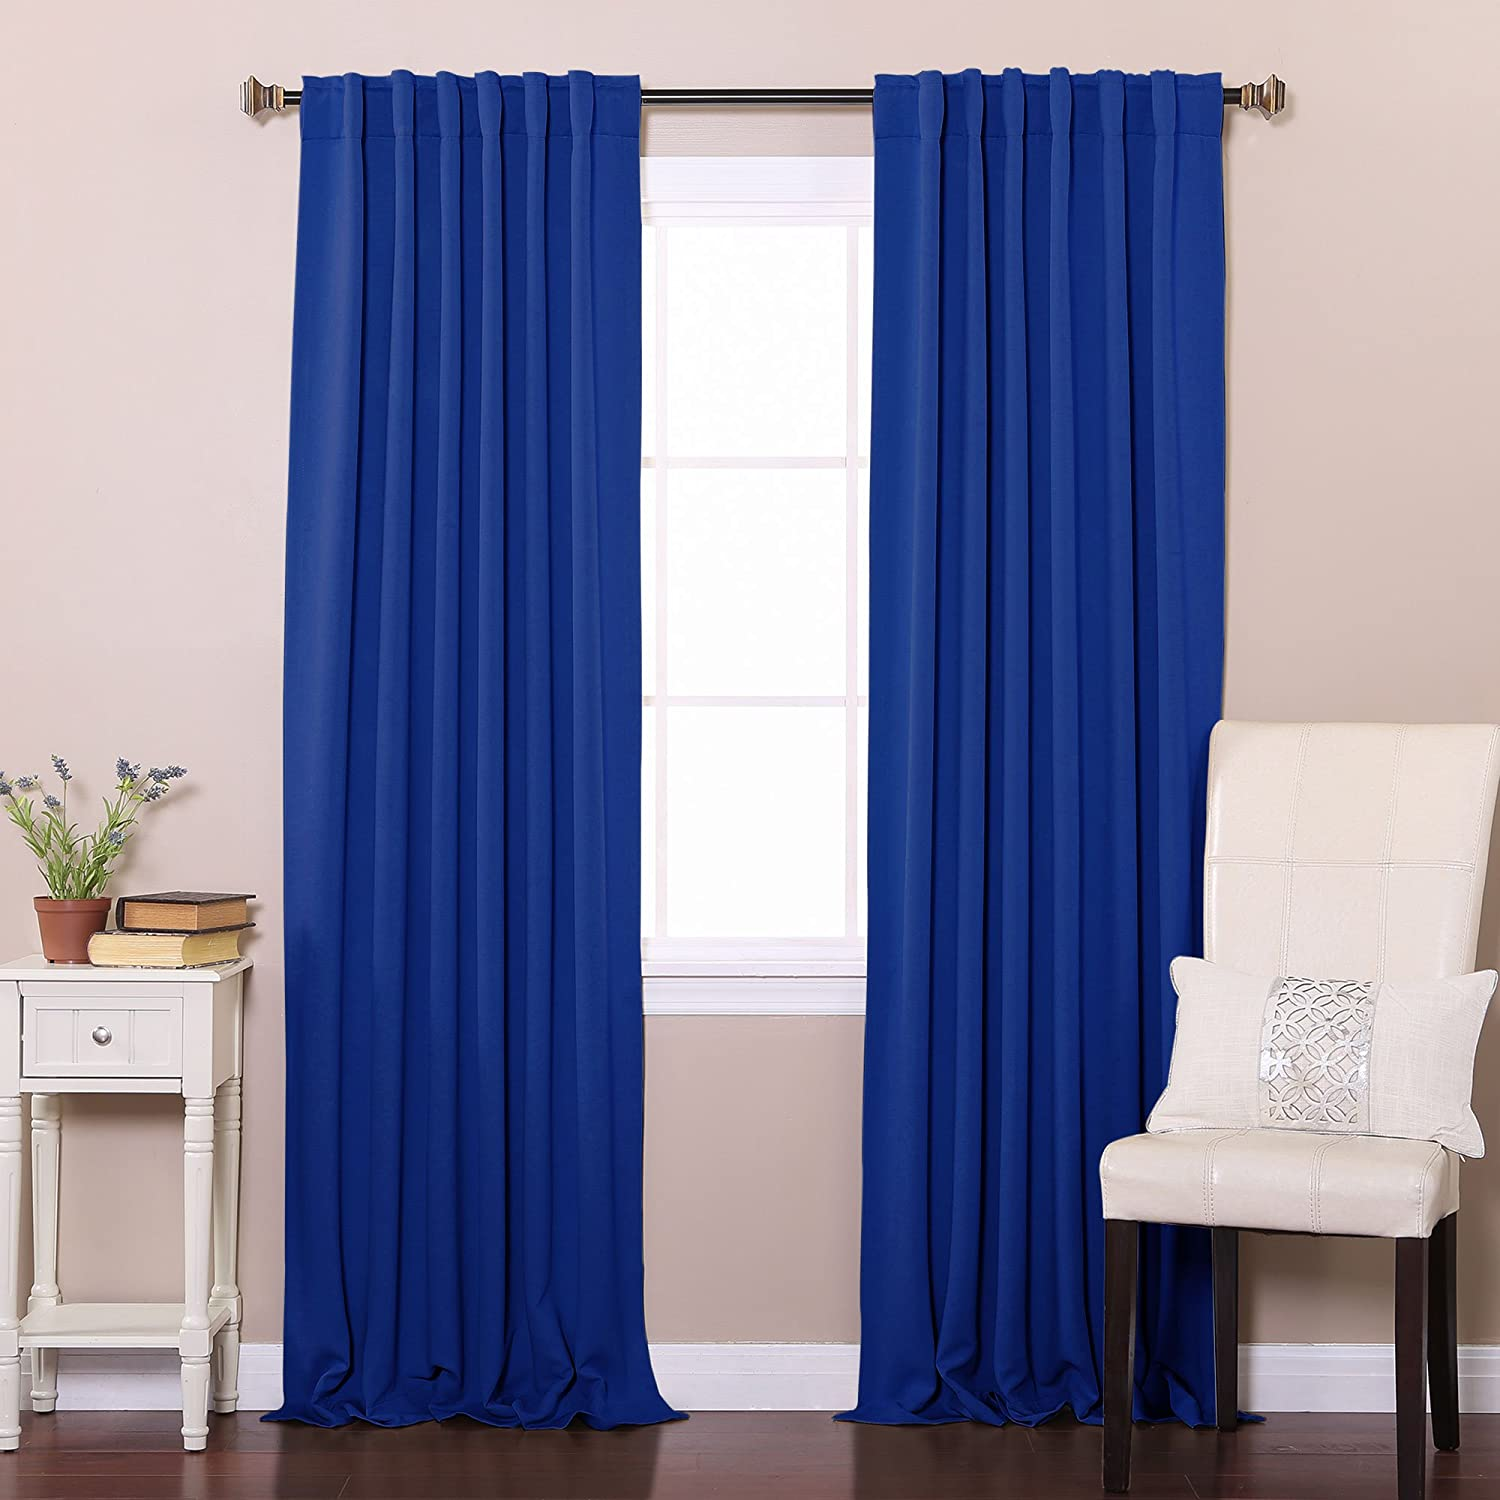 Best Home Fashion Thermal Insulated Blackout Curtains - Back Tab/ Rod Pocket - Royal Blue - 52W x 84L - Tie backs included (Set of 2 Panels)